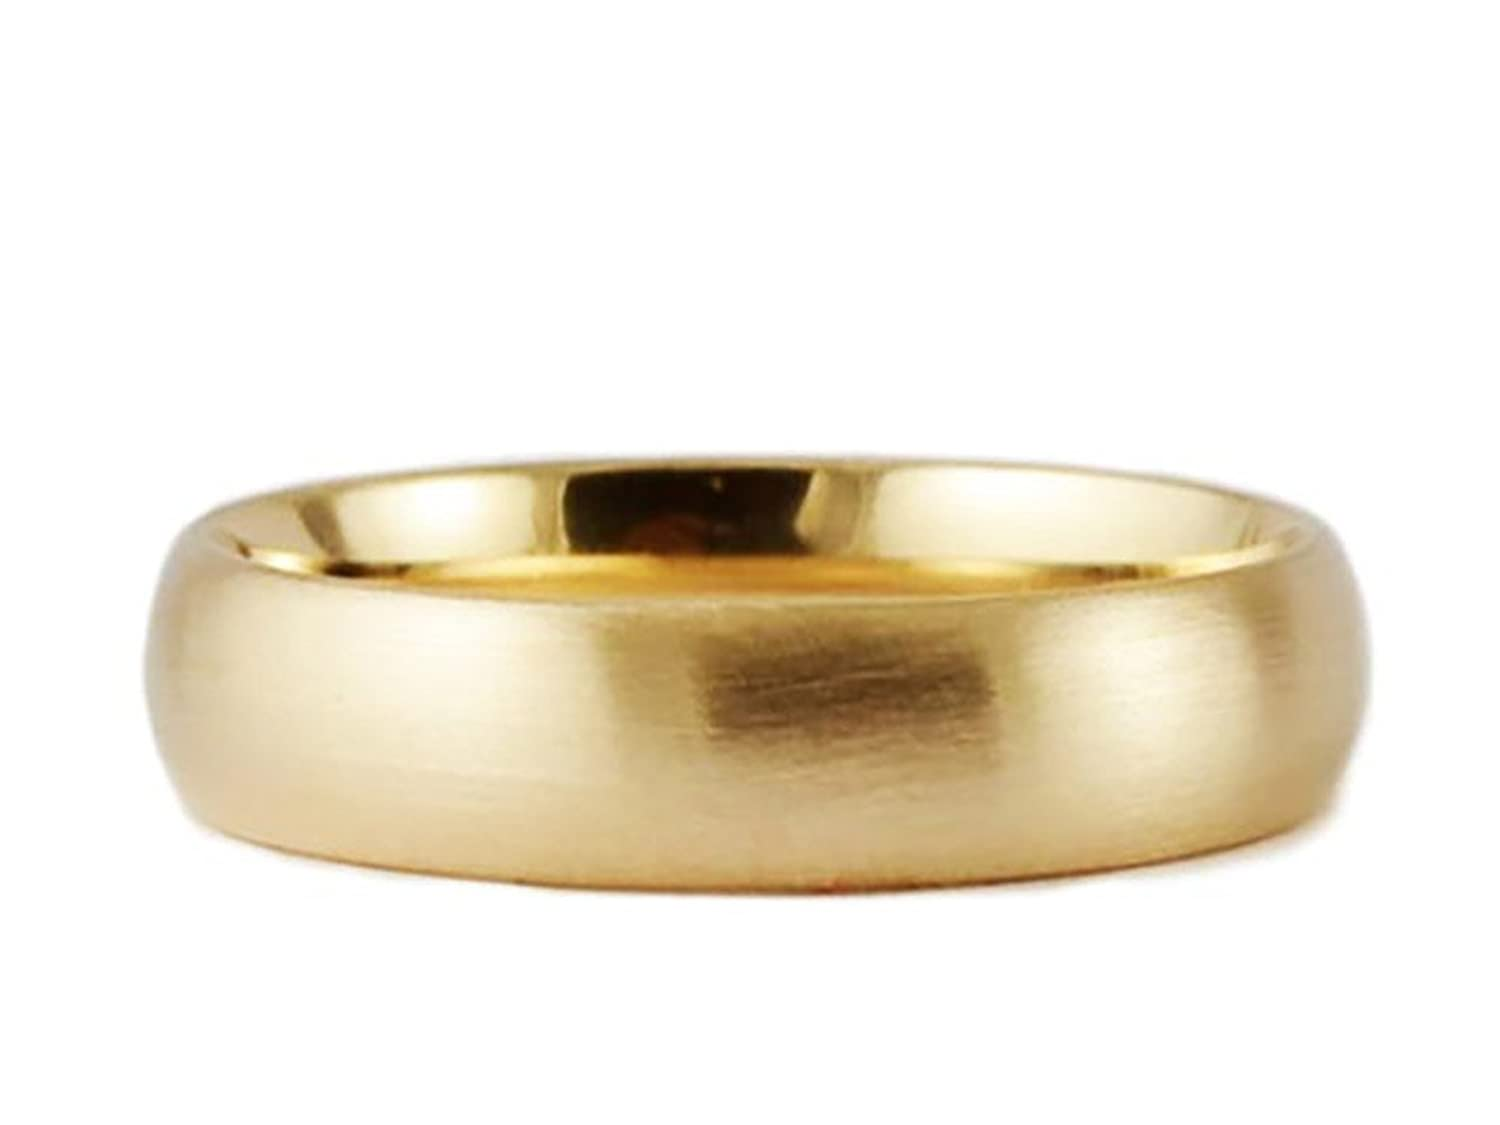 Men's & Women's 14k Yellow Gold Brushed 6mm COMFORT FIT WEDDING BAND |  Amazon.com